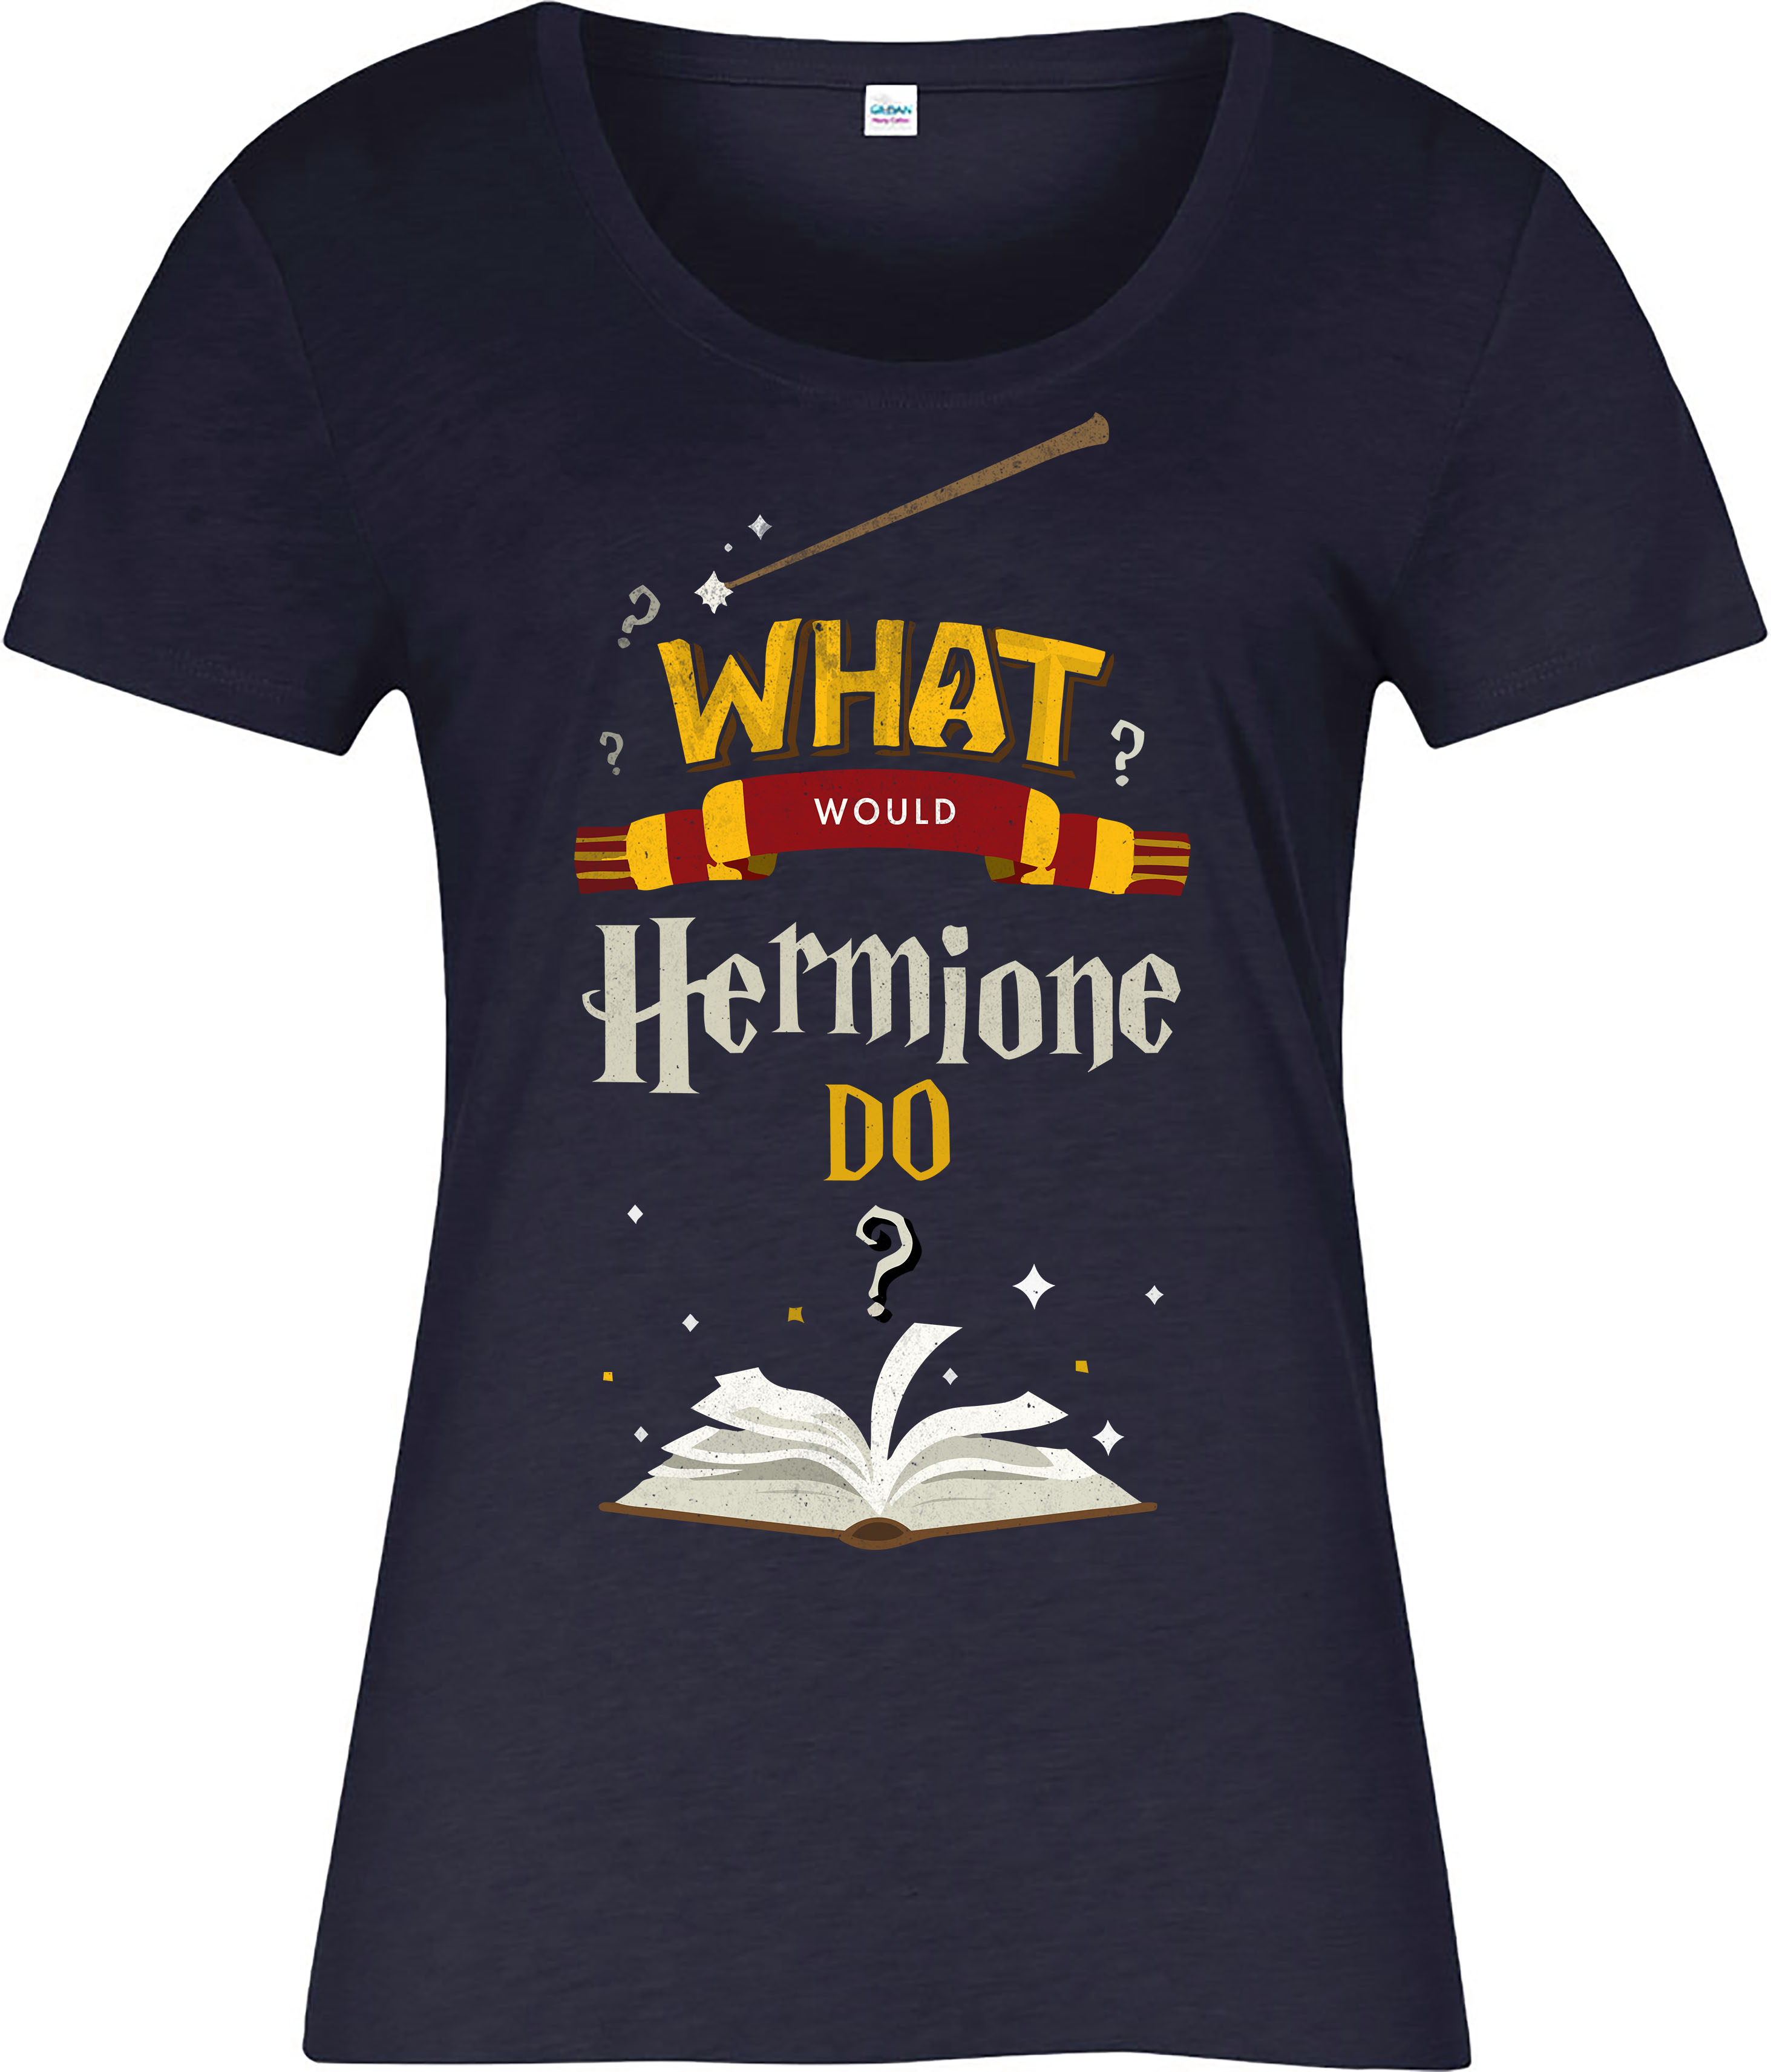 harry potter ladies t shirt what would hermione do inspired design ebay. Black Bedroom Furniture Sets. Home Design Ideas